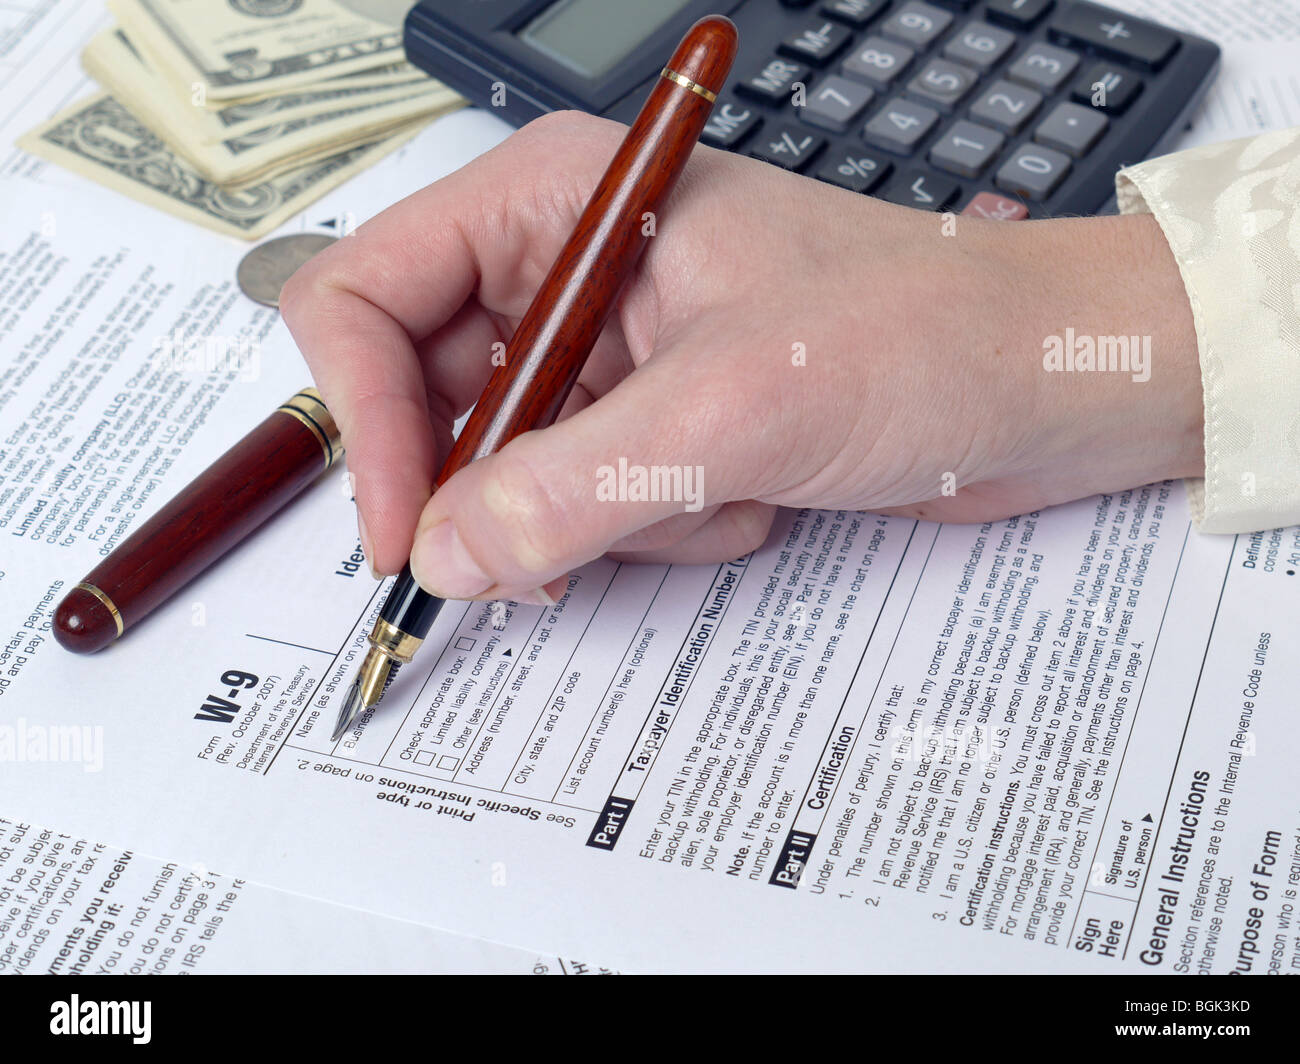 Female hand filling out W-9 income tax form with pen - Stock Image